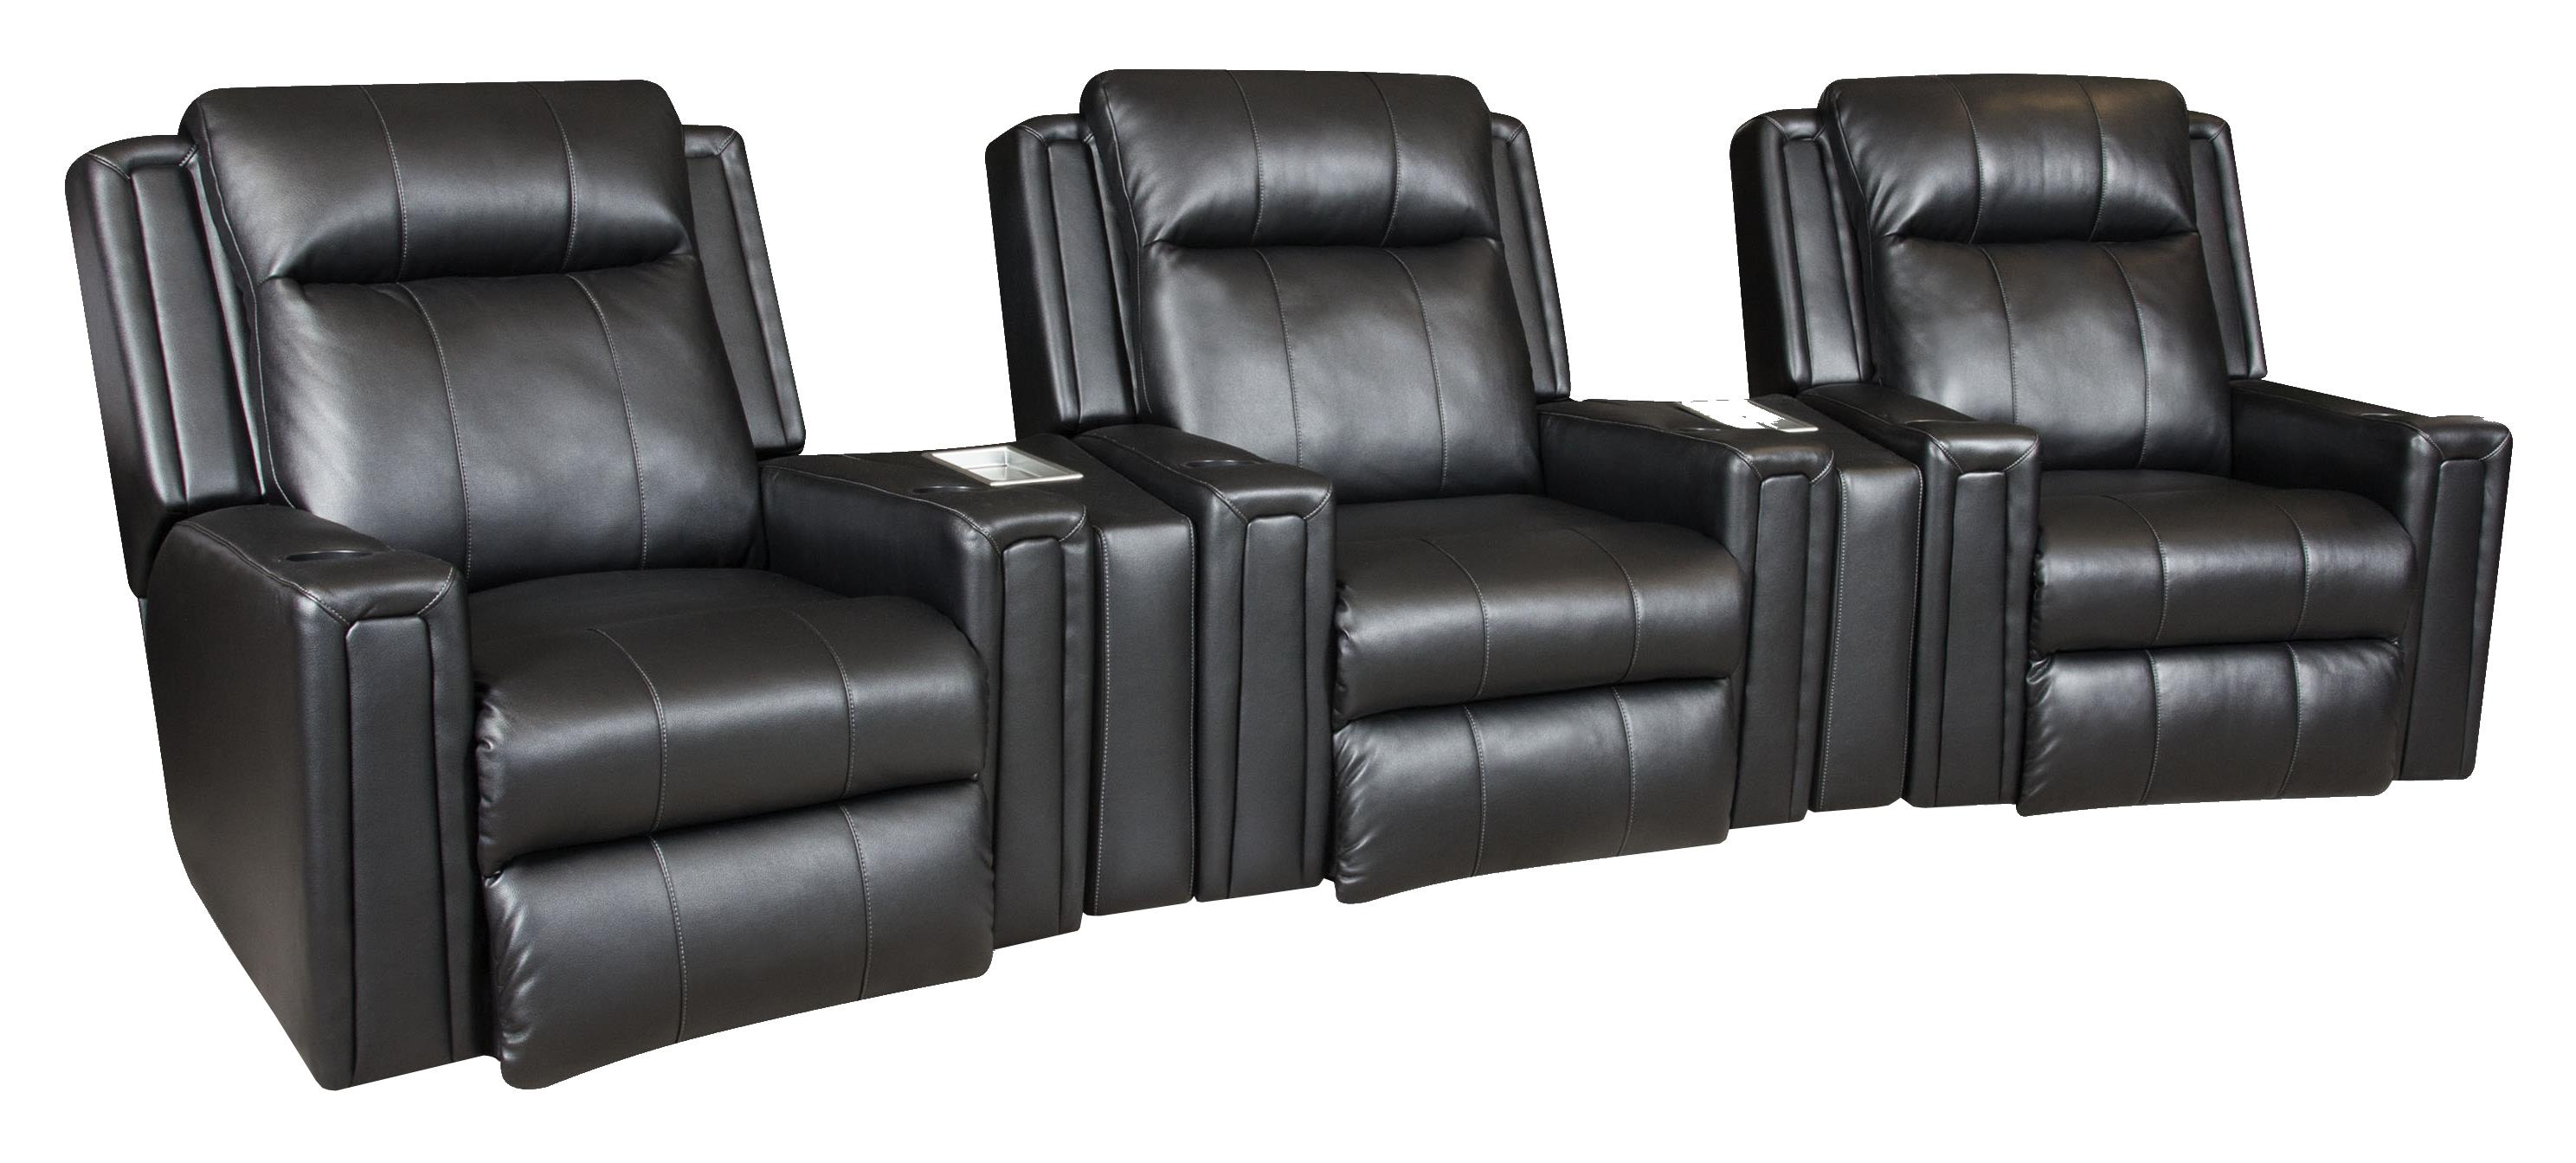 Southern Motion Curve Three Seat Movie Theater Seating Sectional - Item Number: 6858Px3+858-44x2-205-13